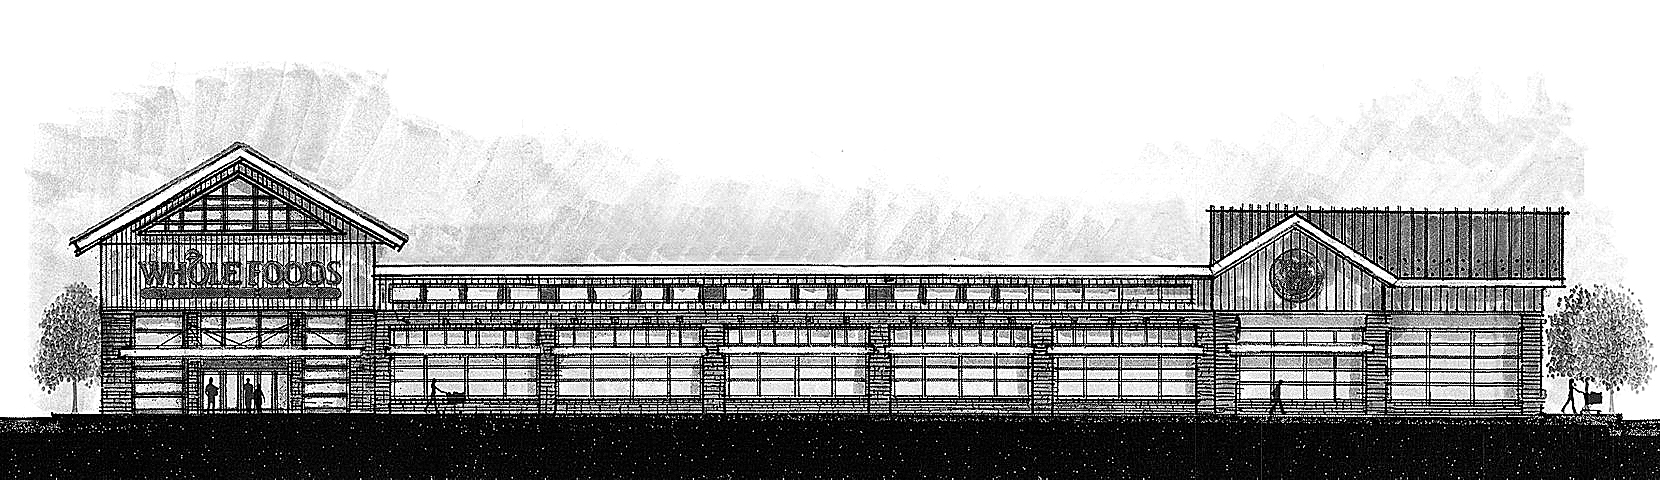 Sketch of the Whole Foods store planned for the Northtown Plaza in Amherst.